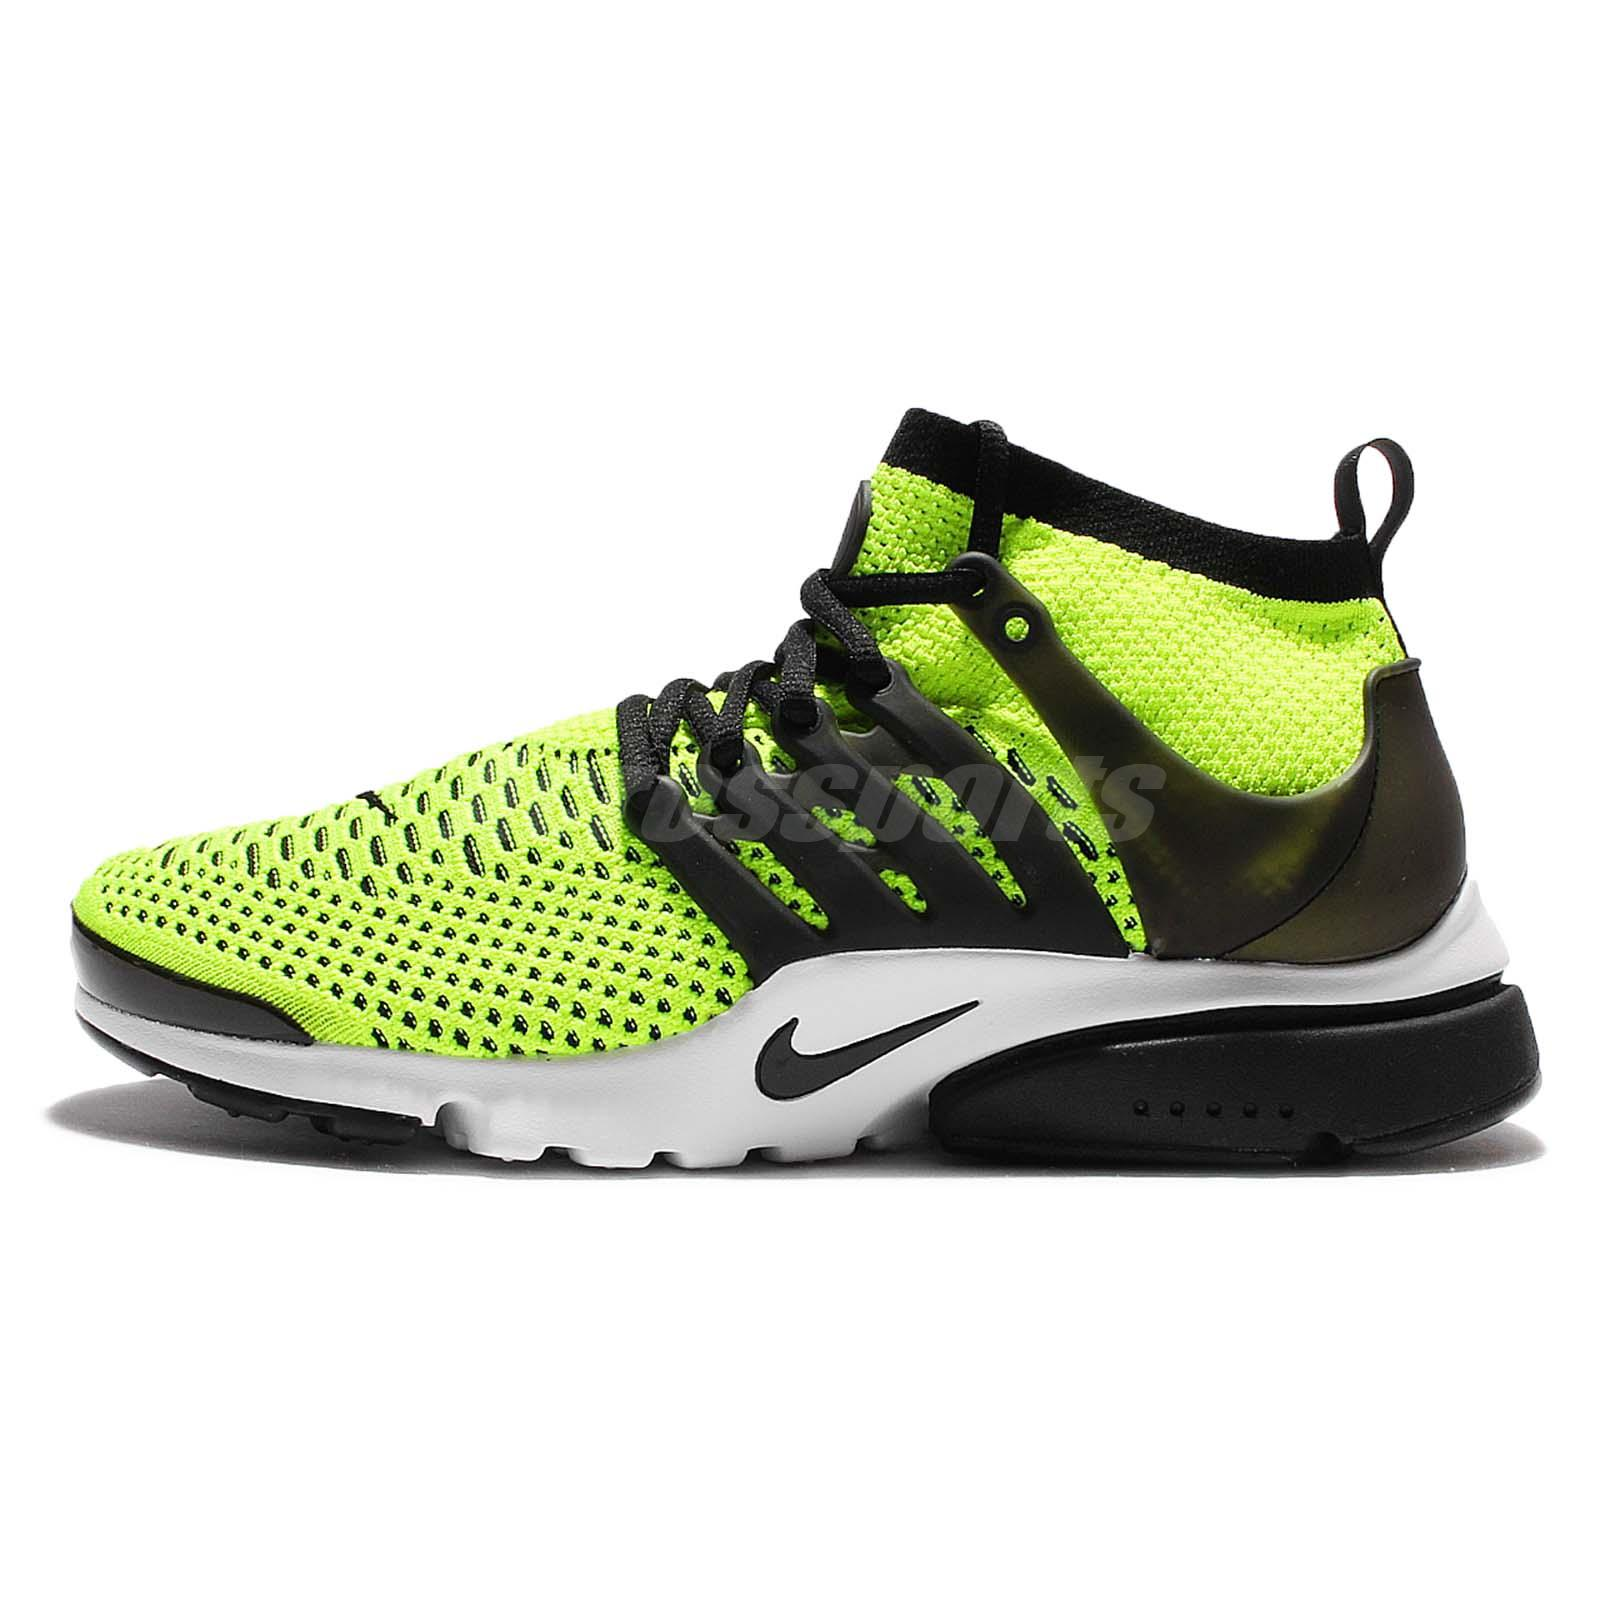 Nike Air Presto Flyknit Ultra Black Volt Mens Running Shoes Sneakers 835570701